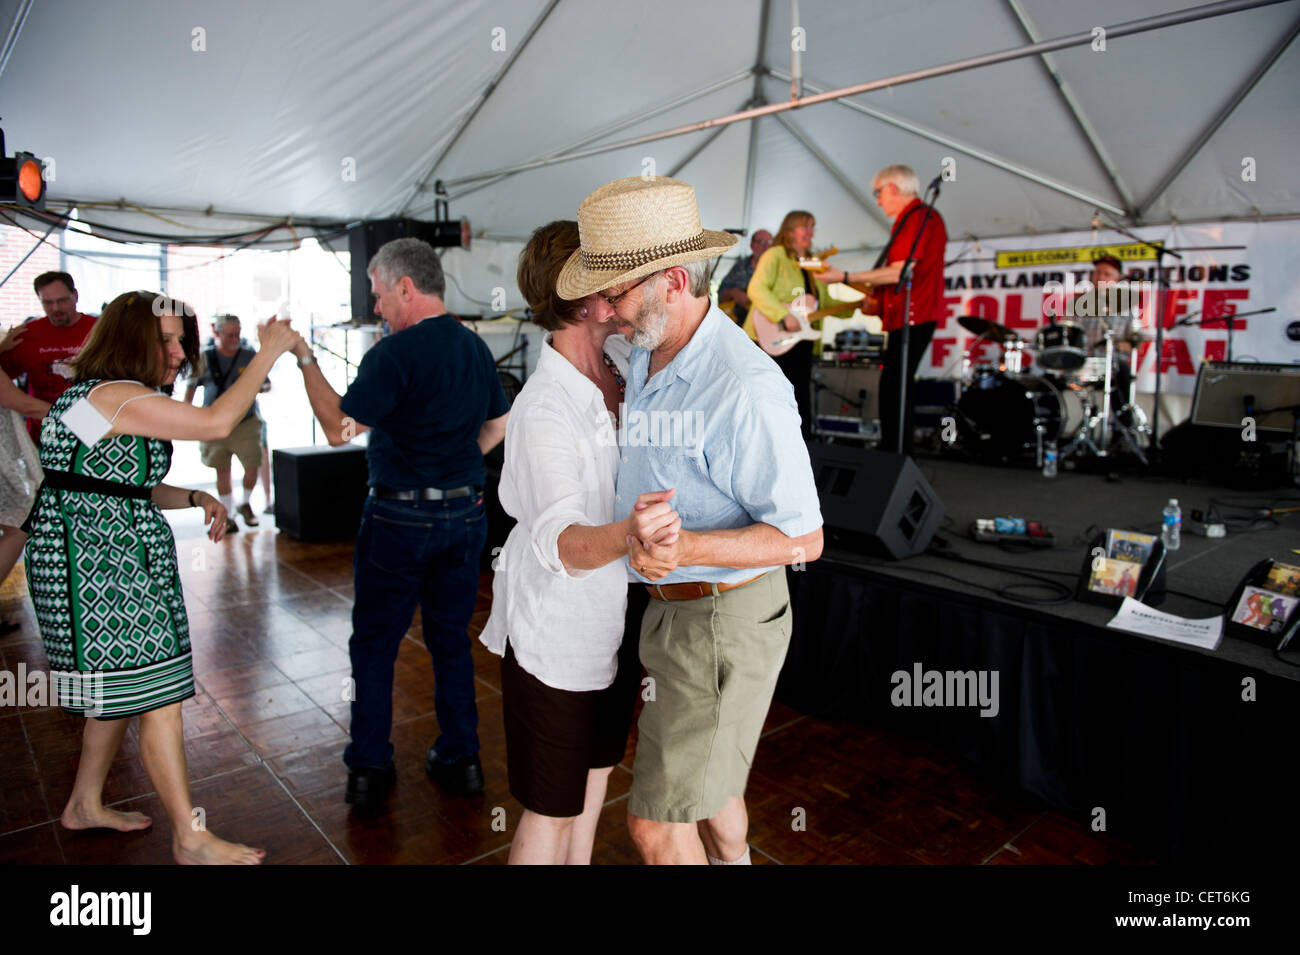 Bill Kirchen and Marcy Marxer giving live performance in Baltimore and people dancing to music - Stock Image